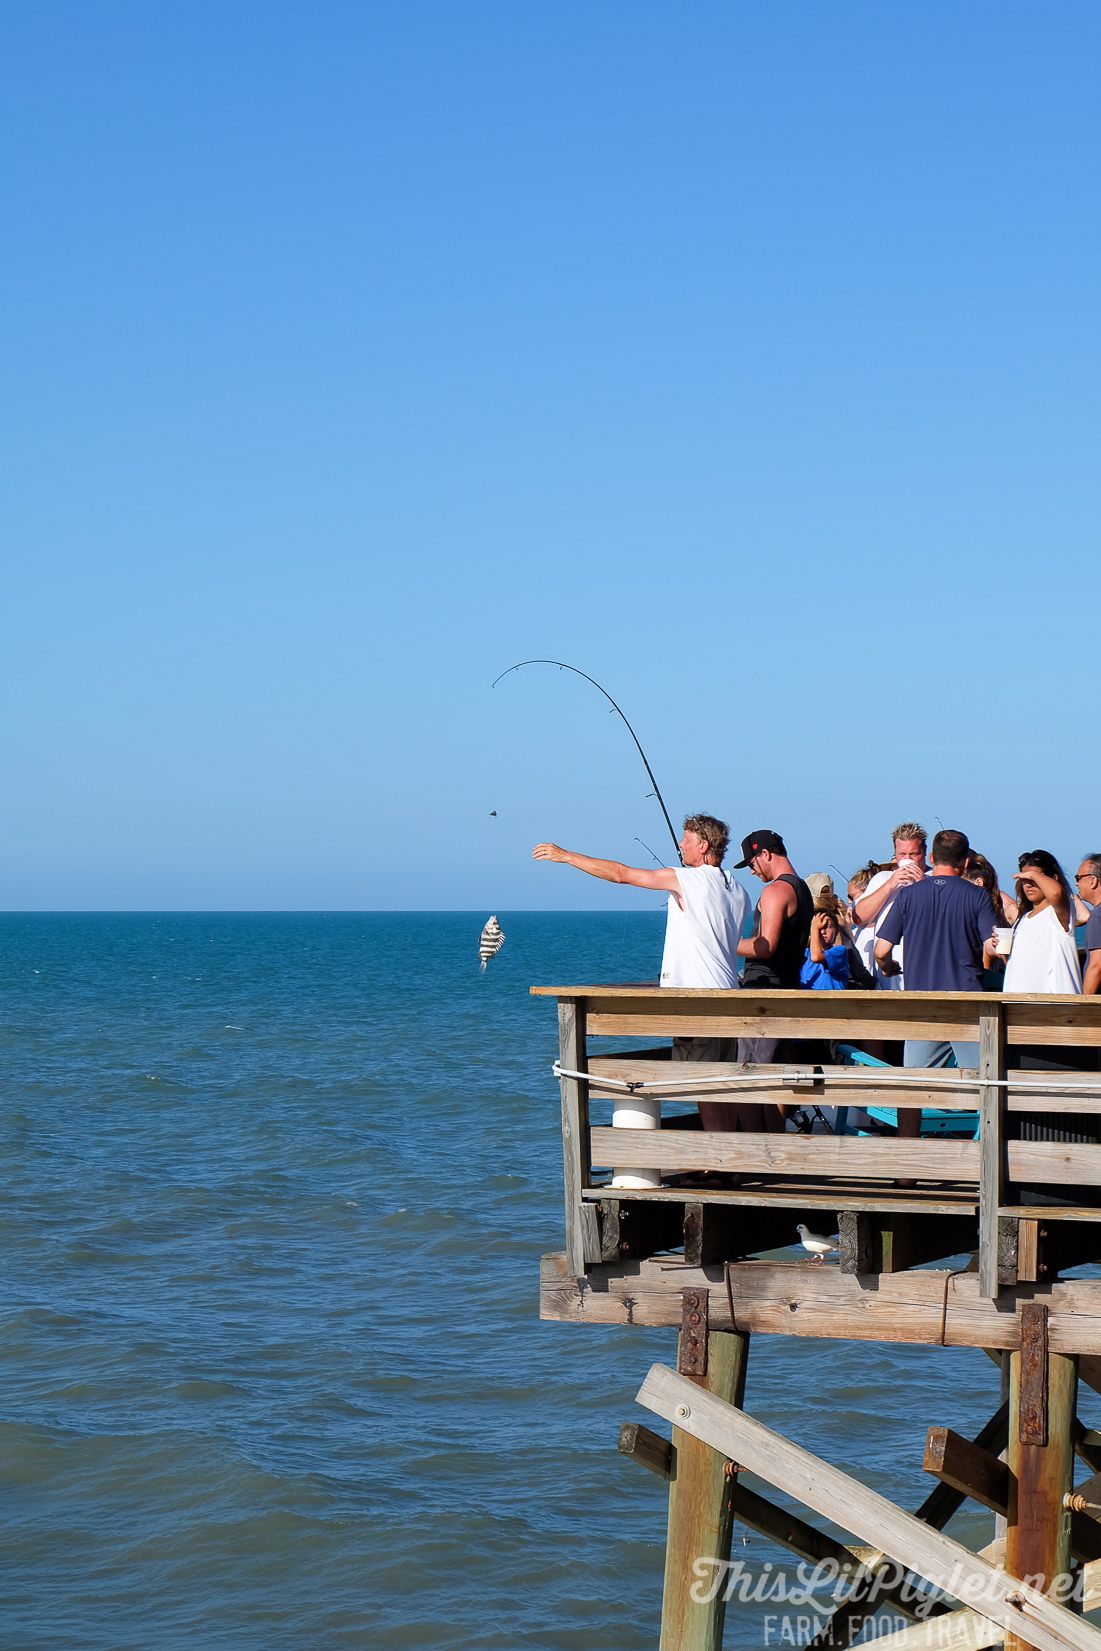 Things to do at Cocoa Beach on Florida's Space Coast - Fishing at Cocoa Beach via @thislilpiglet